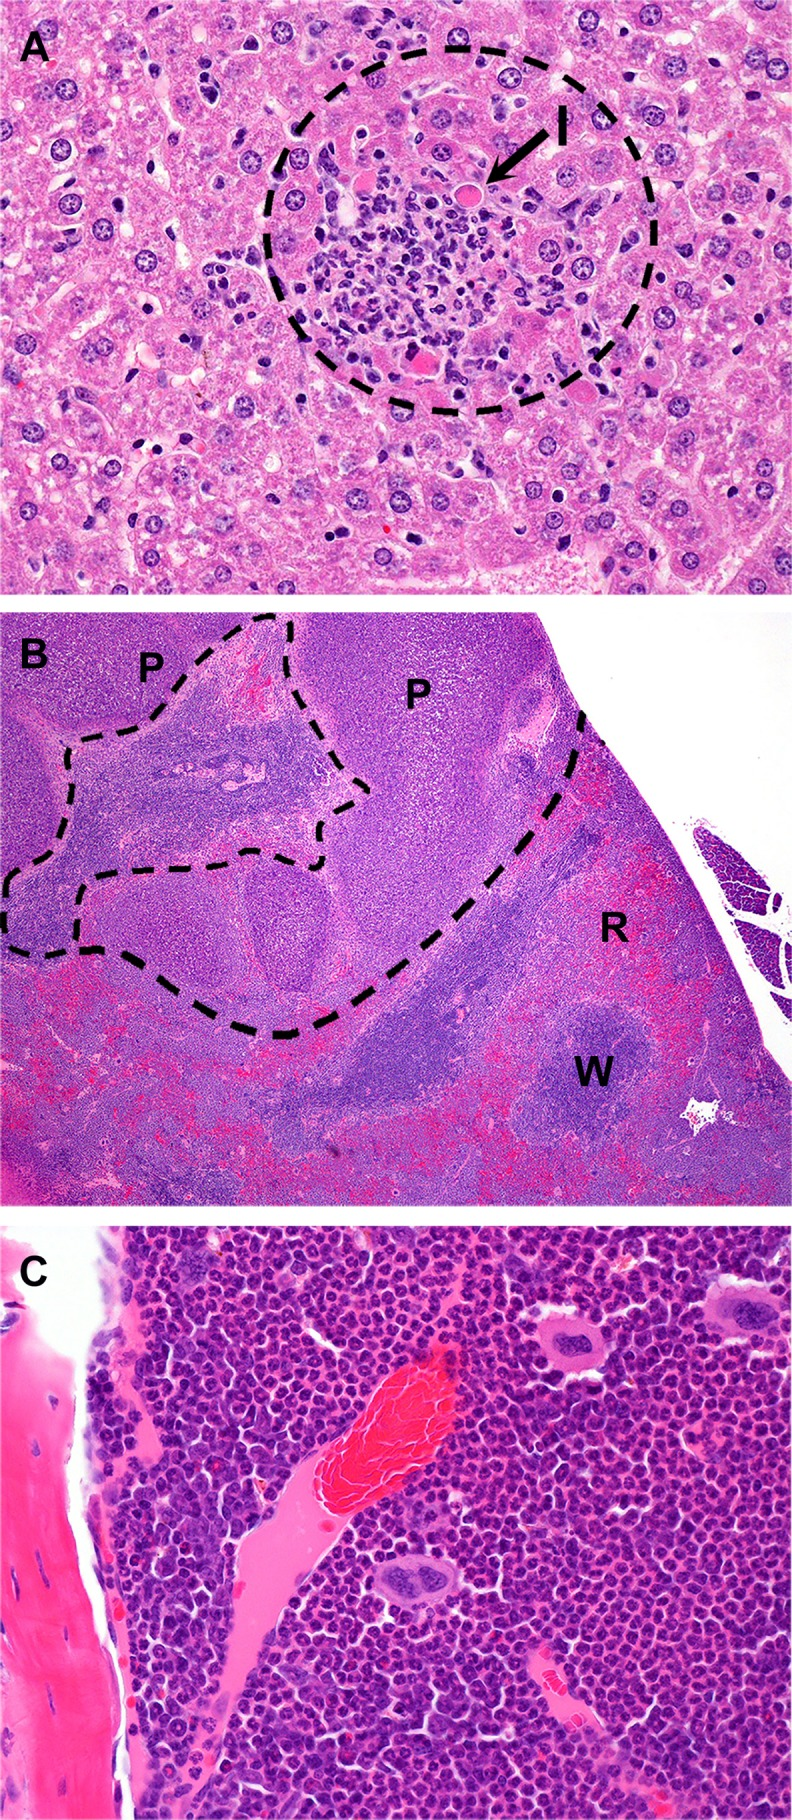 Histopathology observed in mice following IP challenge with B . pseudomallei K96243. (A) C57BL/6 mouse euthanized on day 2 post-infection Liver: Random foci of neutrophilic inflammation with individual hepatocyte necrosis/apoptosis (arrow). I = inflammation; H E, 400X. (B) BALB/c mouse euthanized on day 20 post-infection with rear-leg paralysis. Spleen: Multiple pyogranulomas effacing red and white pulp; H E, 40X. (C) C57BL/6 mouse euthanized on day 22 post-infection. Femoral bone marrow: Myeloid hyperplasia with predominance of neutrophils. H E, 400X. P = pyogranuloma; R = red pulp; W = white pulp;